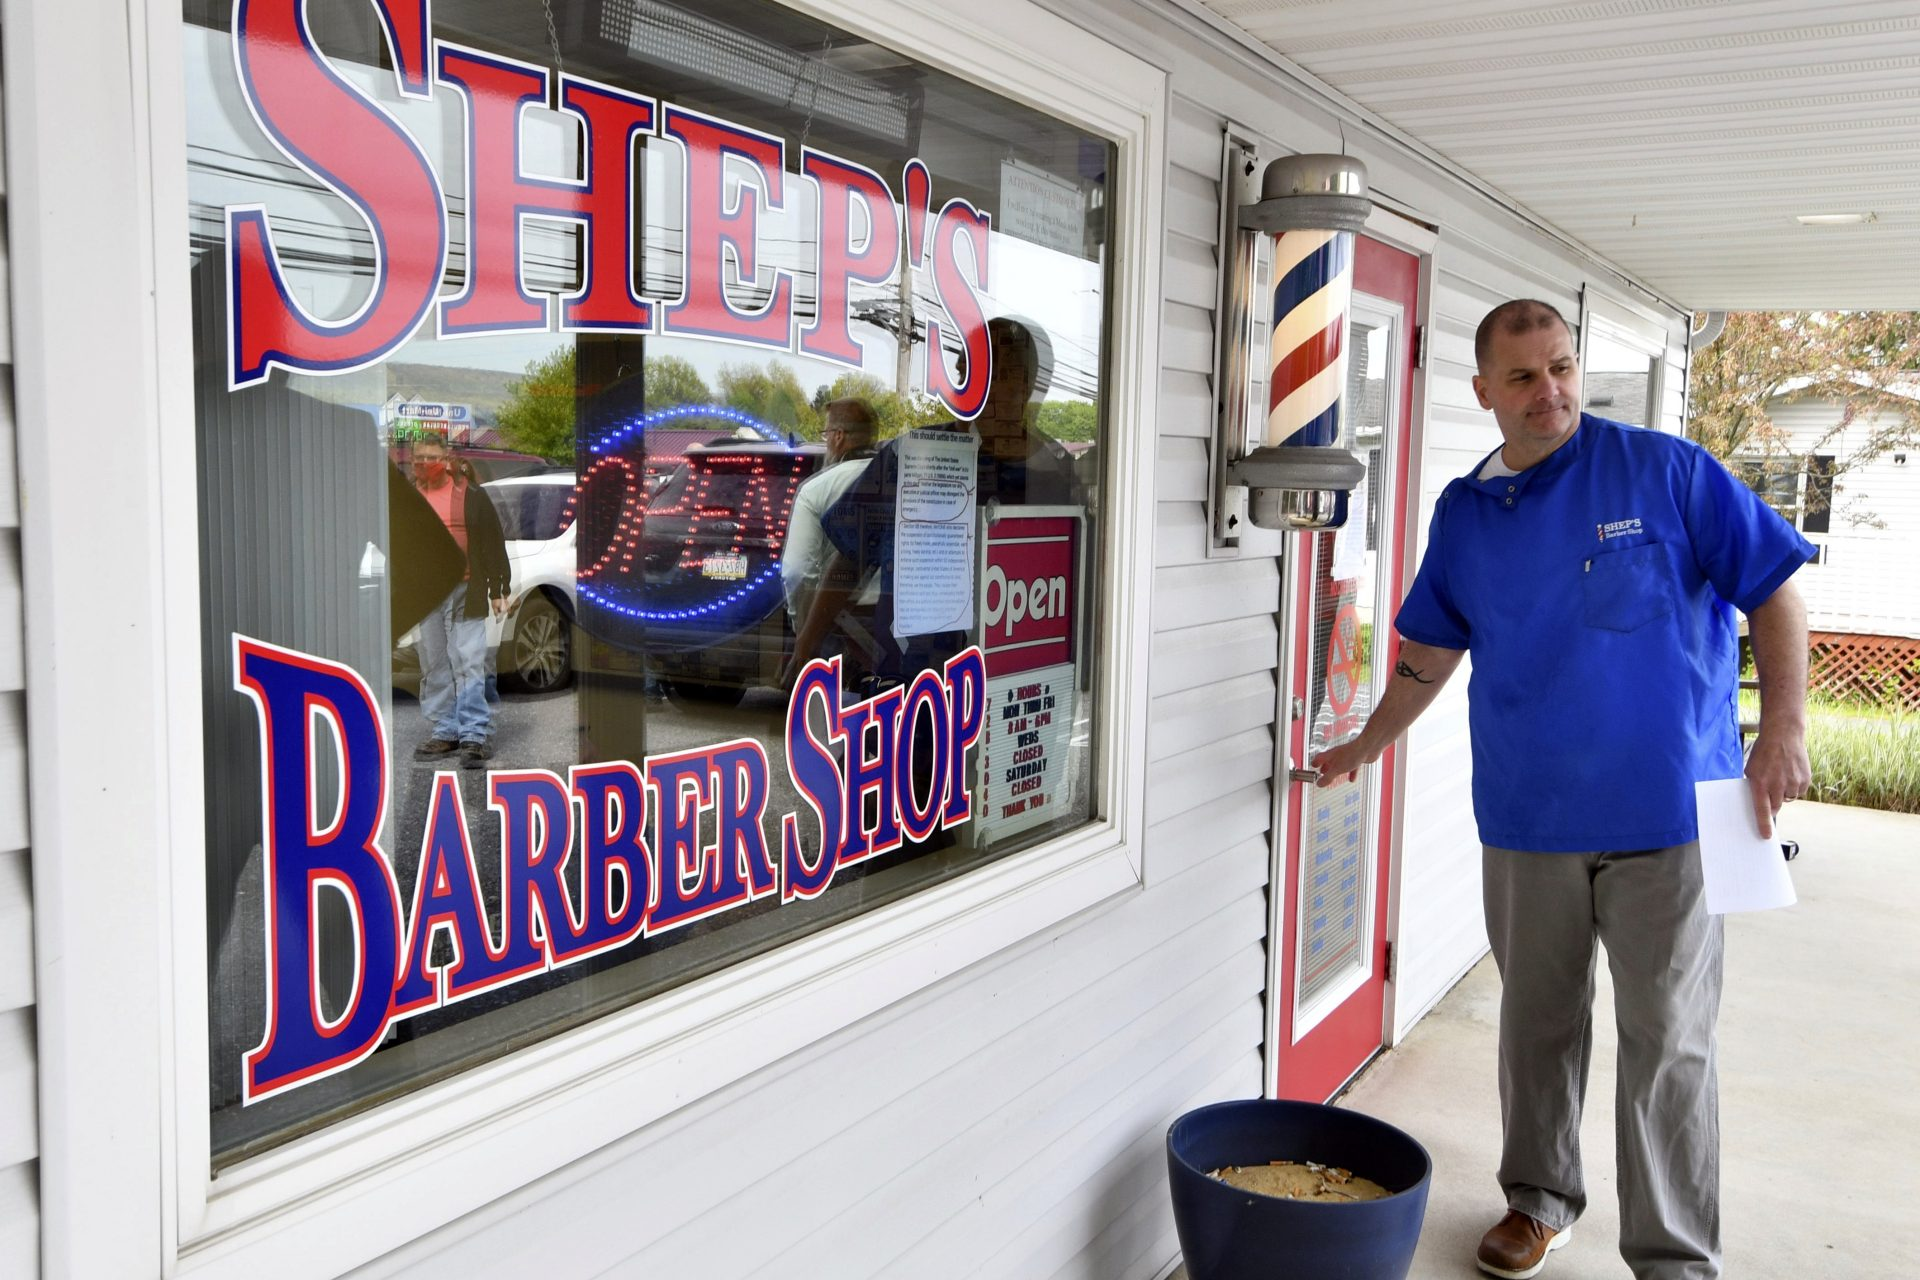 Brad Shepler, a barber who resumed cutting hair despite it being prohibited under Pennsylvania Gov. Tom Wolf's coronavirus shutdown orders, walks out of his barber shop to hold a new conference with local state lawmakers, Thursday, May 14, 2020 in Enola, Pa. Shepler also received a warning letter from the state's licensing agency.